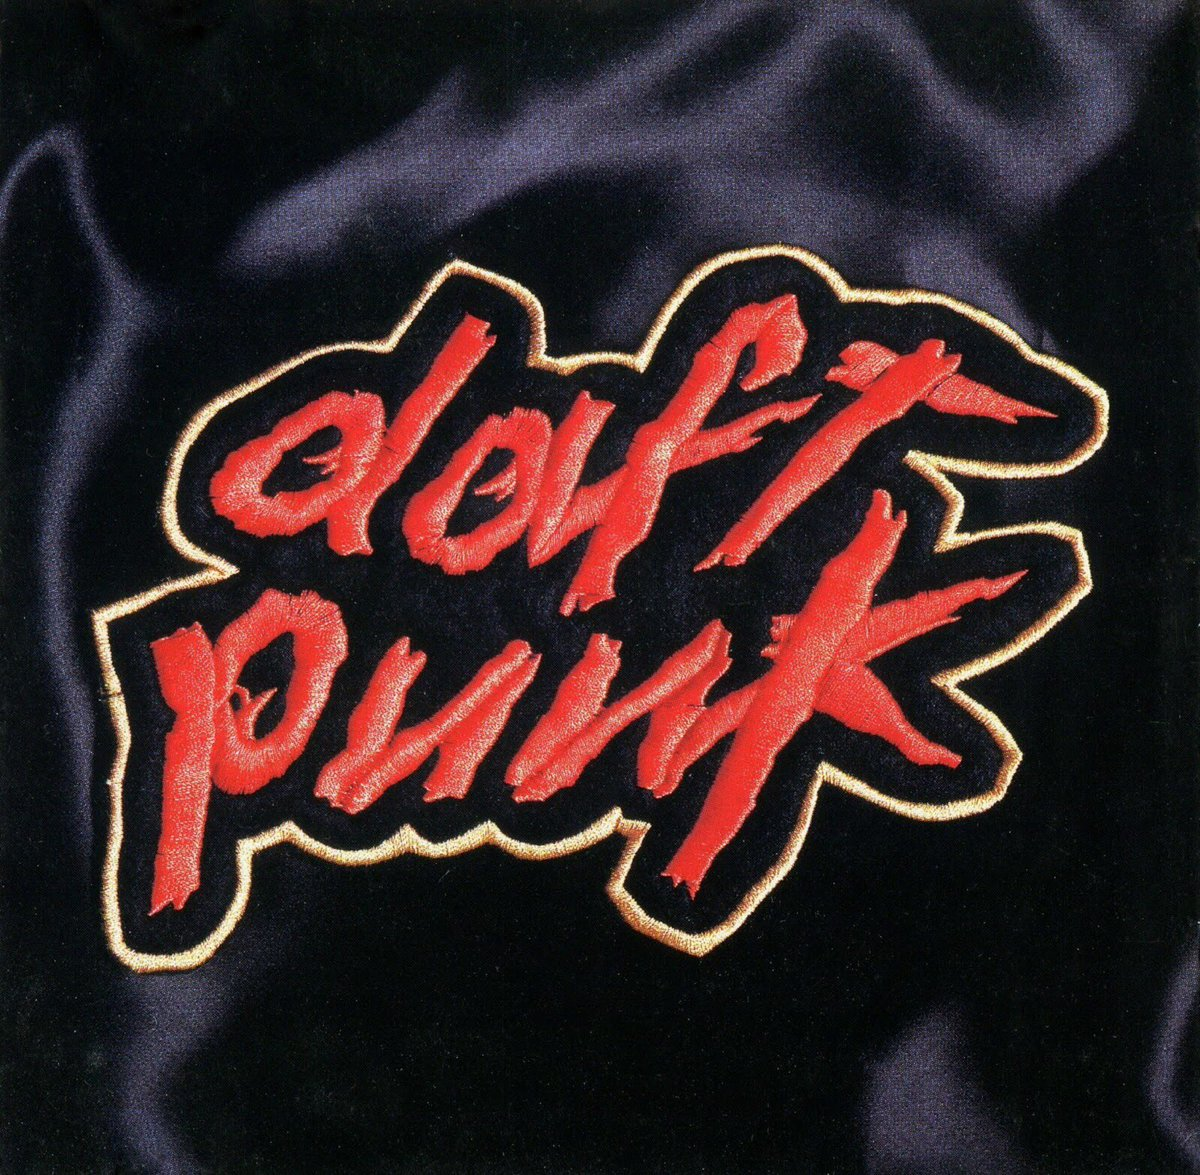 Daft Punk released their debut album 'Homework' on this date in 1997.  Changed electronic music forever.